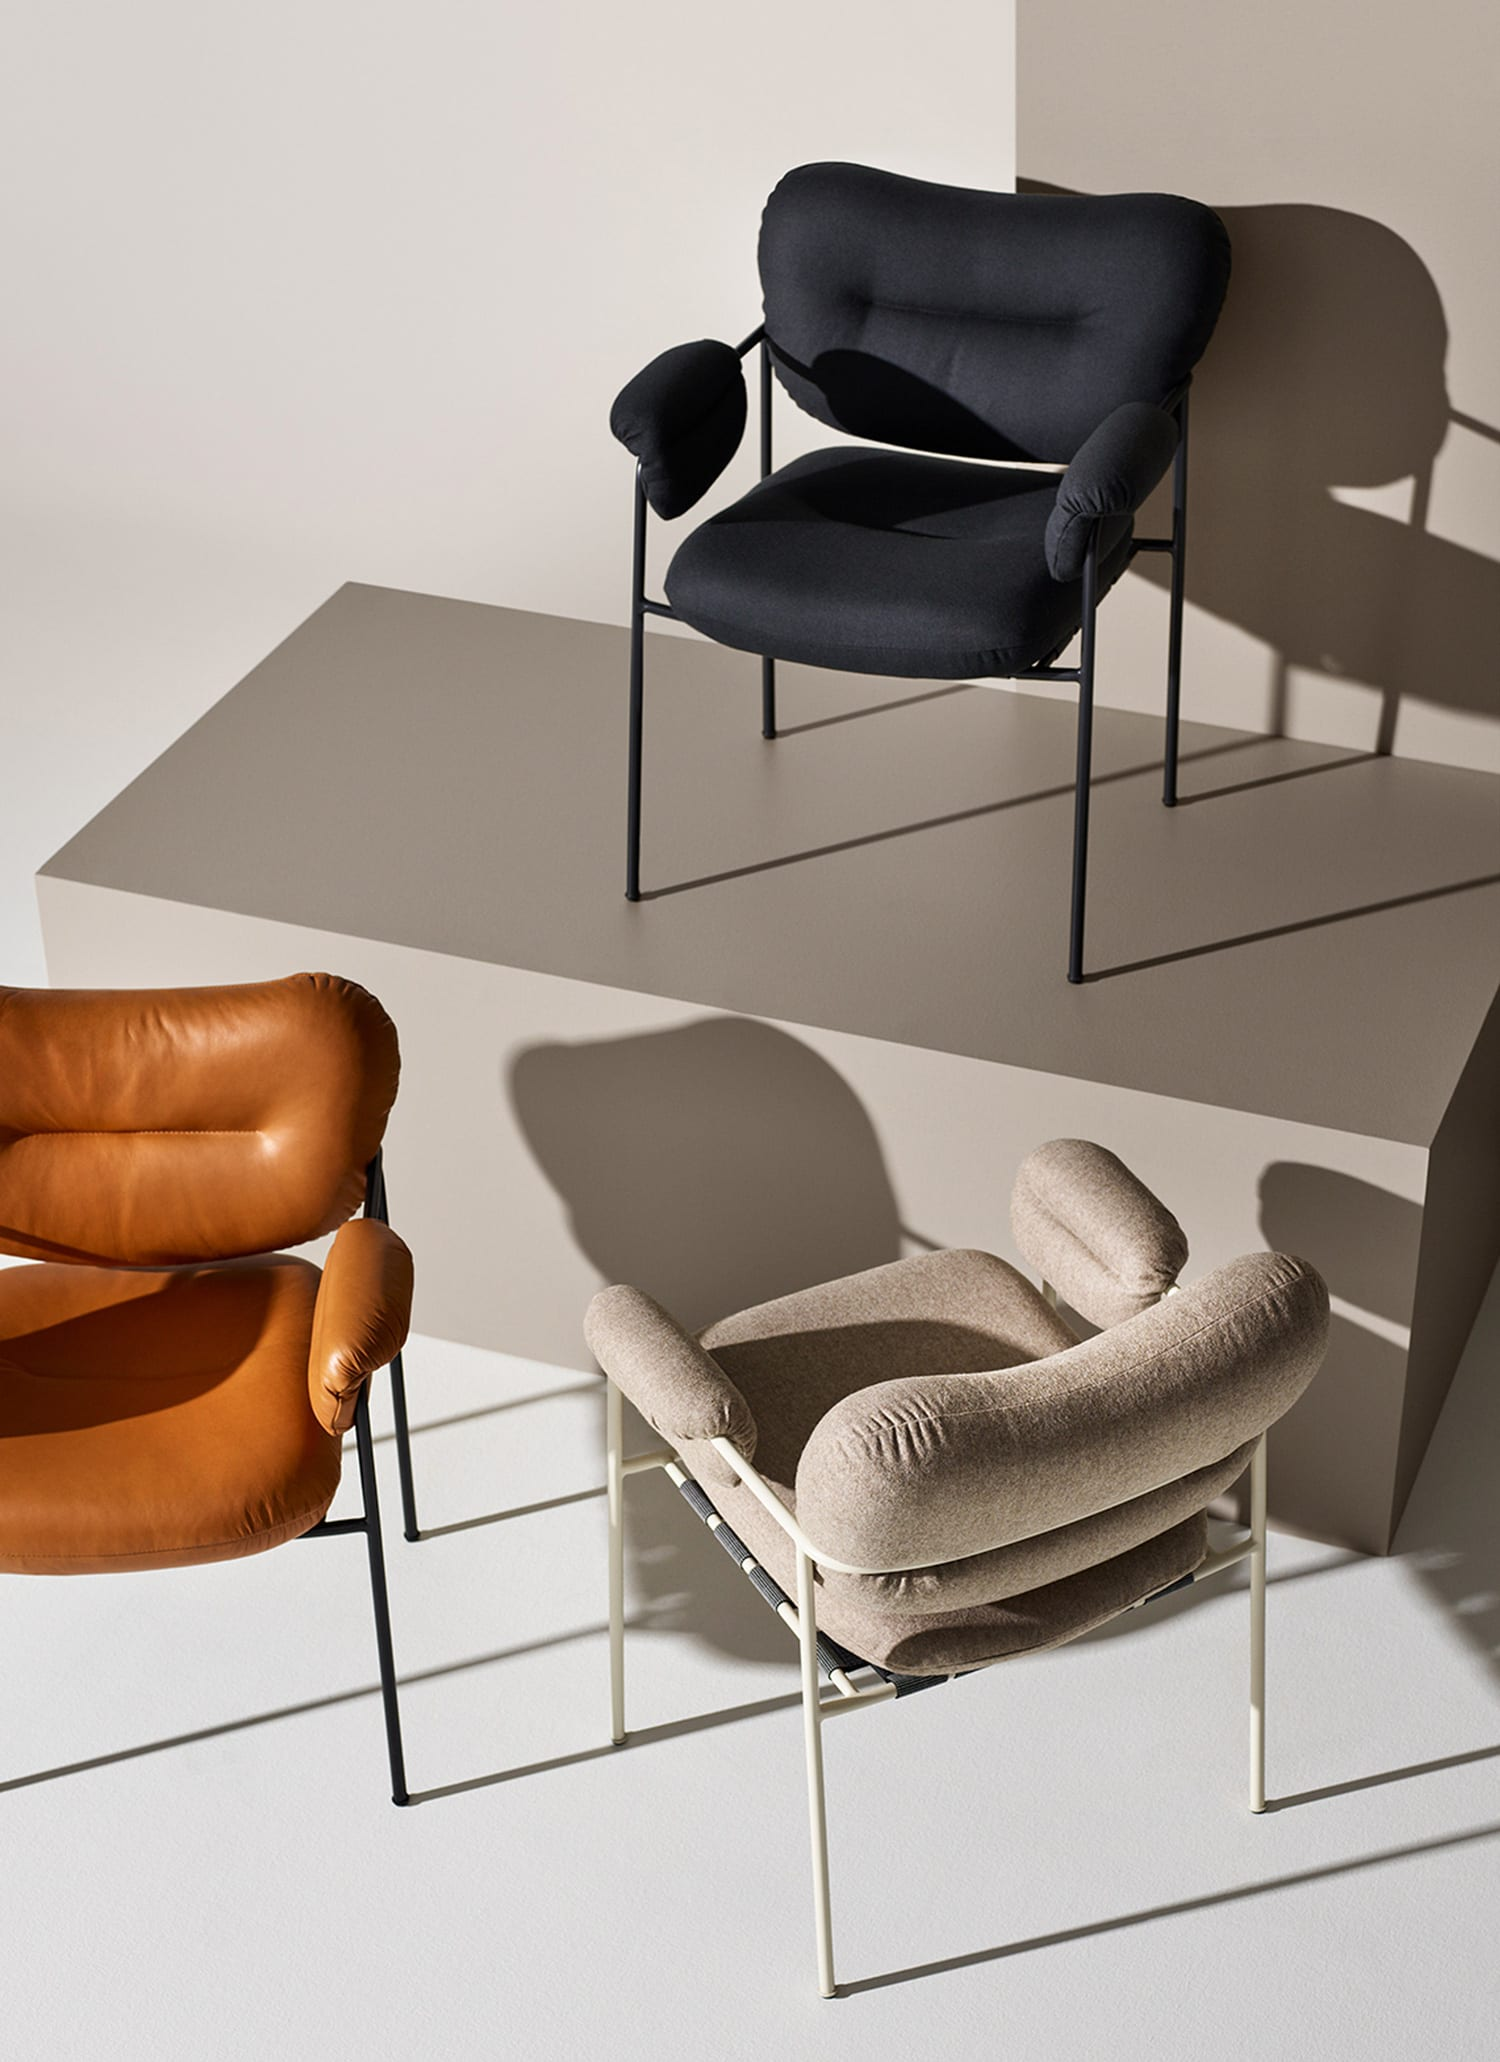 Best In Show Stockholm Furniture Fair 2018 Yellowtrace